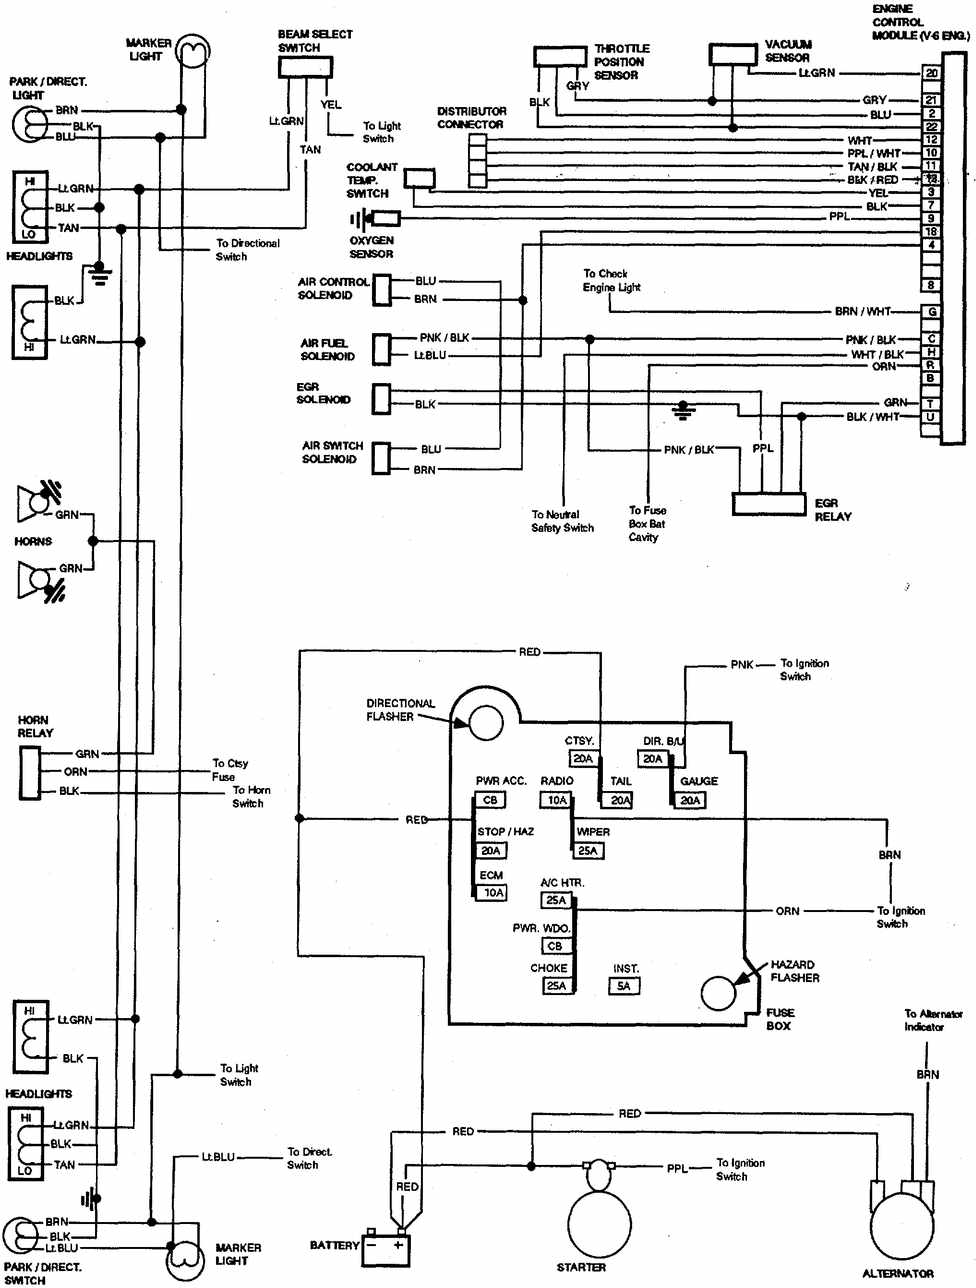 chevy monte carlo wiring diagram get free image about wiring diagram